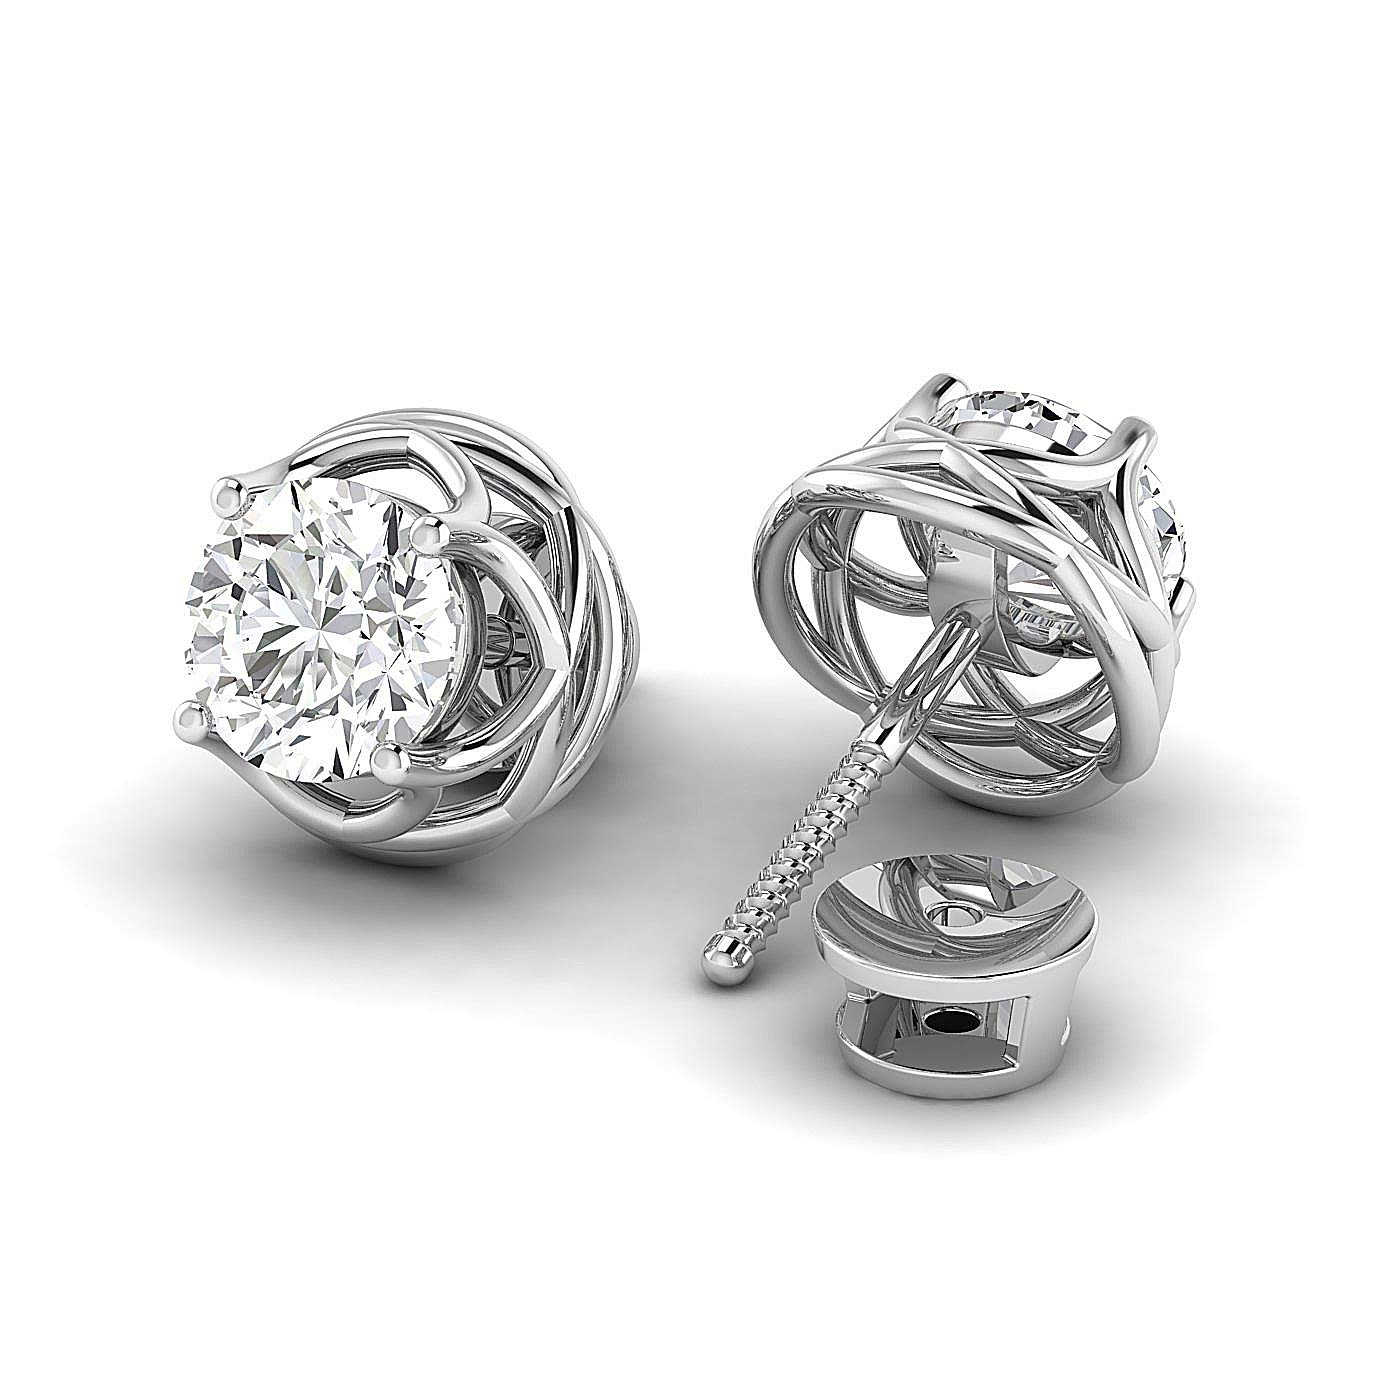 /Pure Gold // 925 Sterling Silver GH//VVS Round Brilliant Earring Studs 0.3 to 4 Carat Moissanite Stud Earrings Stud Earrings for Women perfect Jewelry Gifts for Women Teen Girls